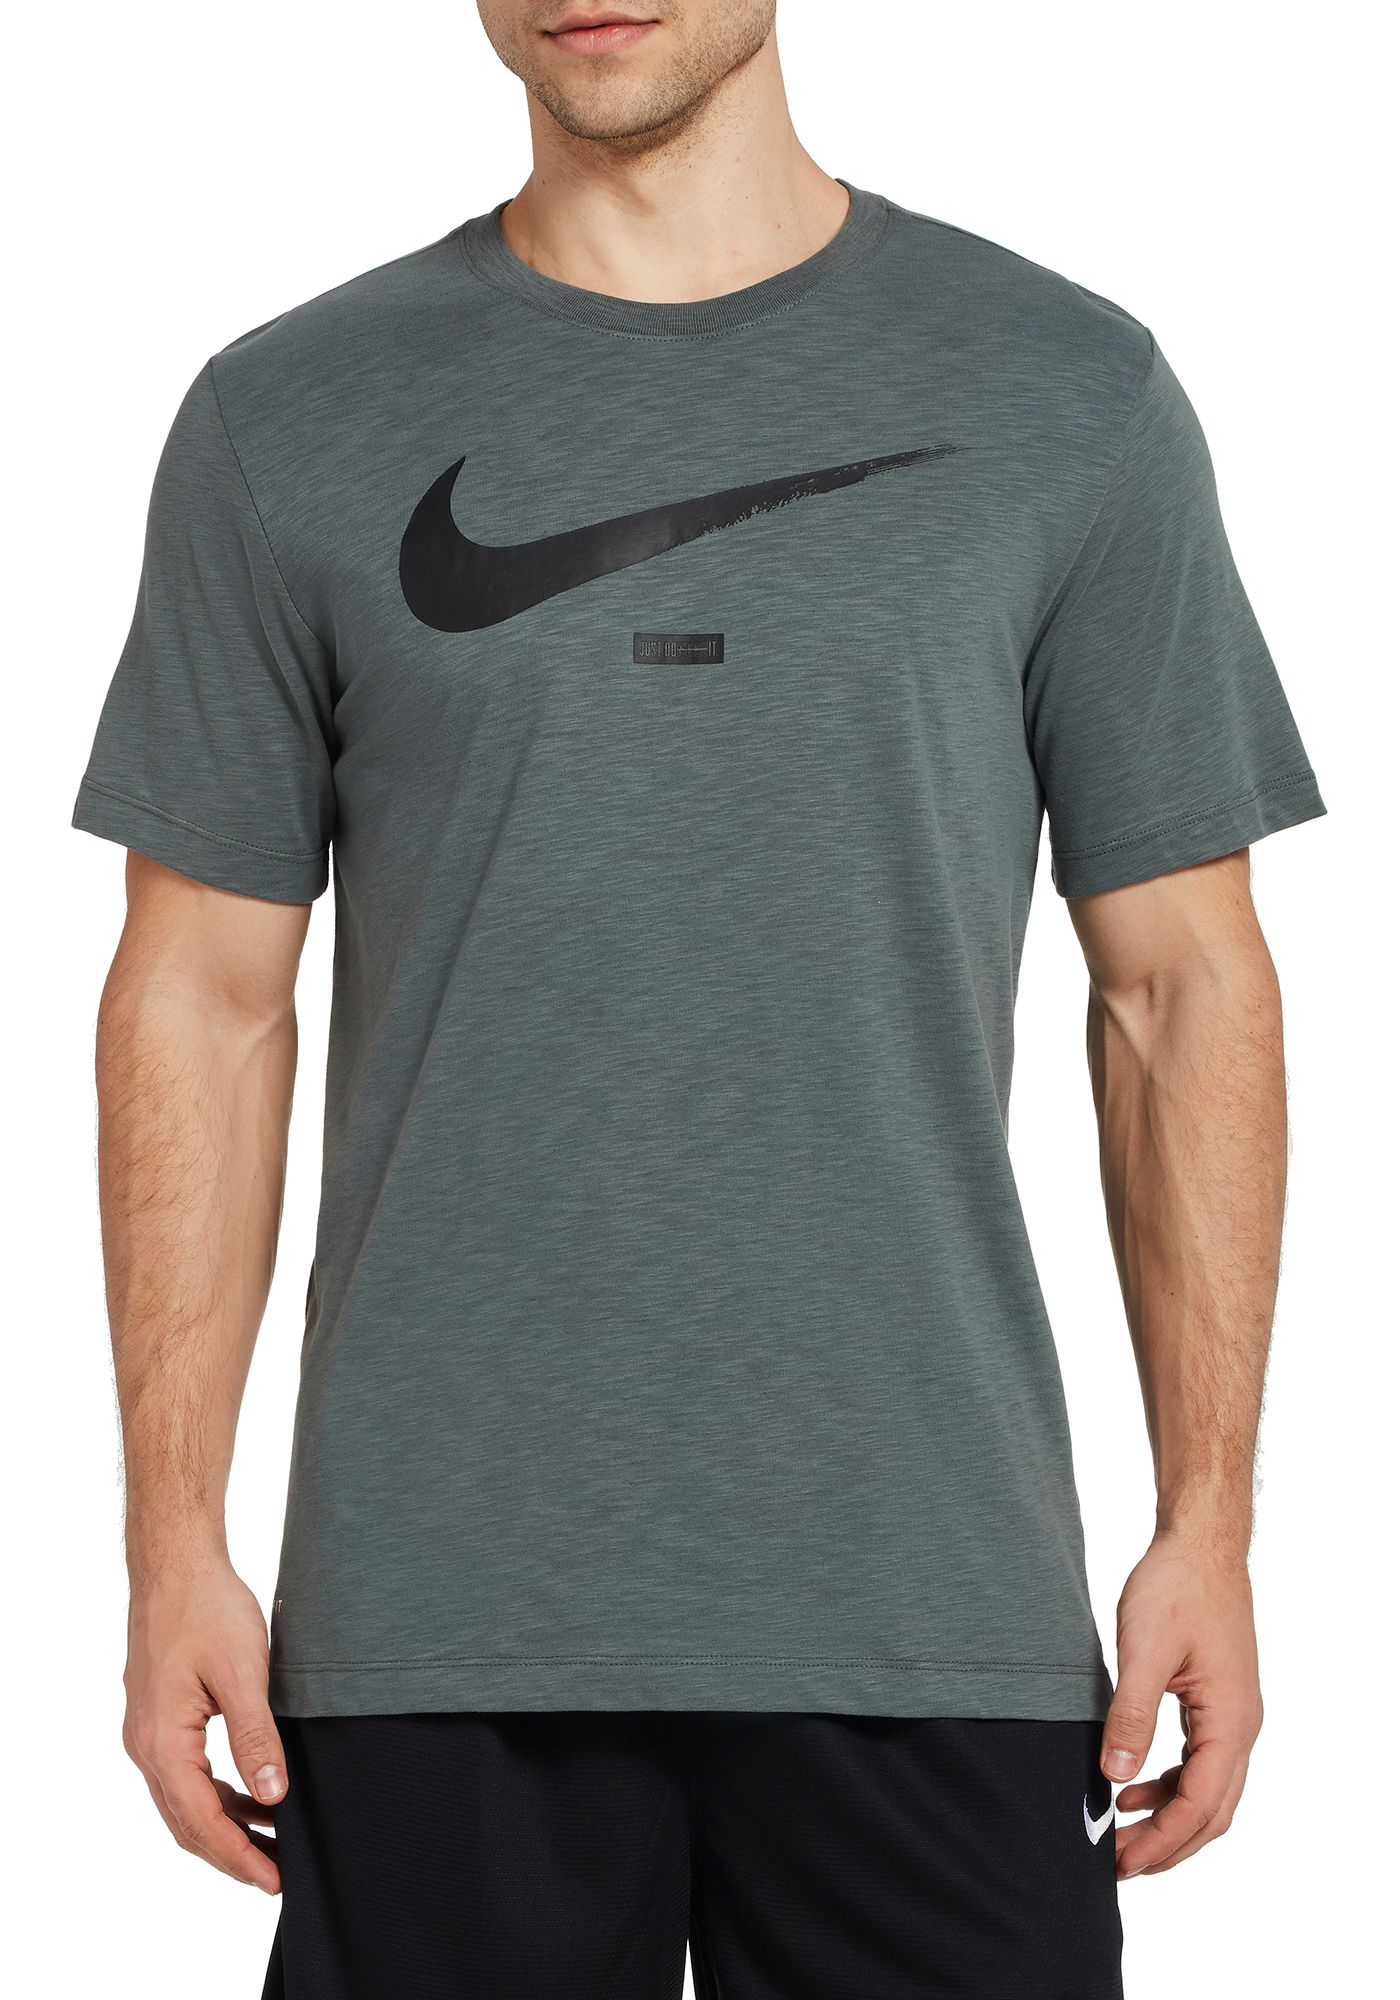 Nike Men's Dry Just Don't Quit Swoosh Graphic Tee